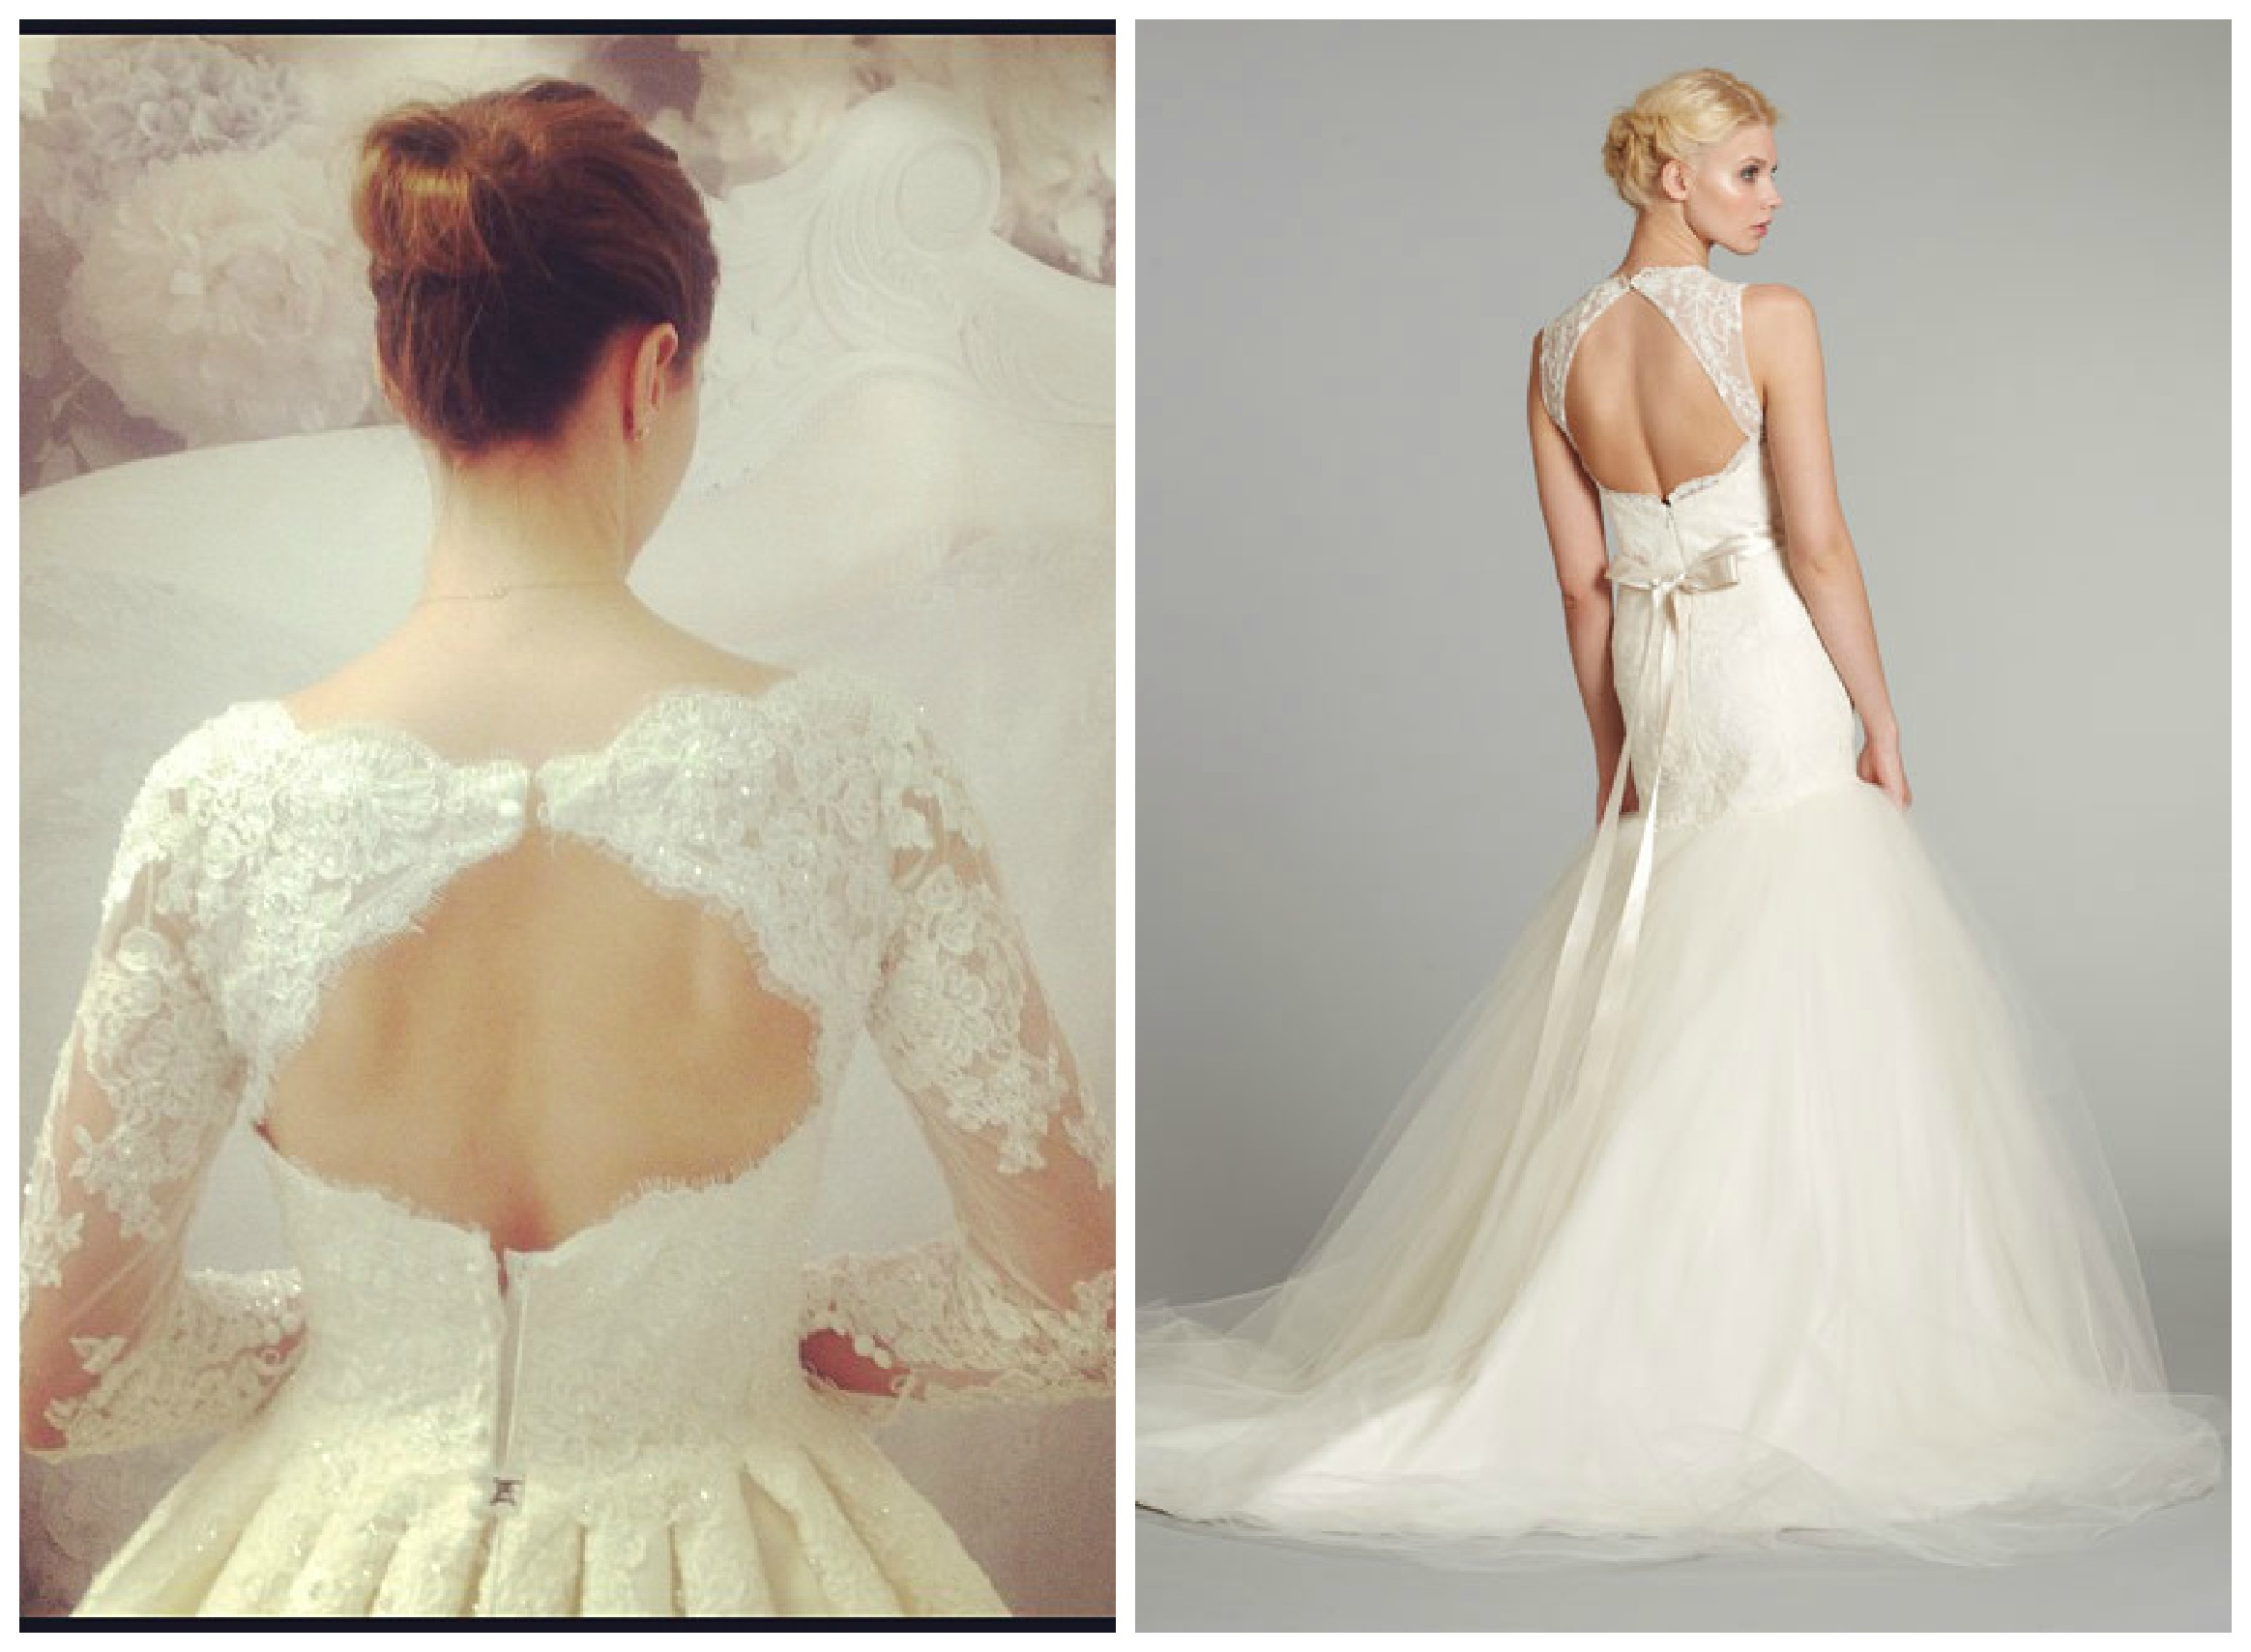 Top 10 Wedding Dress Trends For 2013 Uptowngirl Fashion